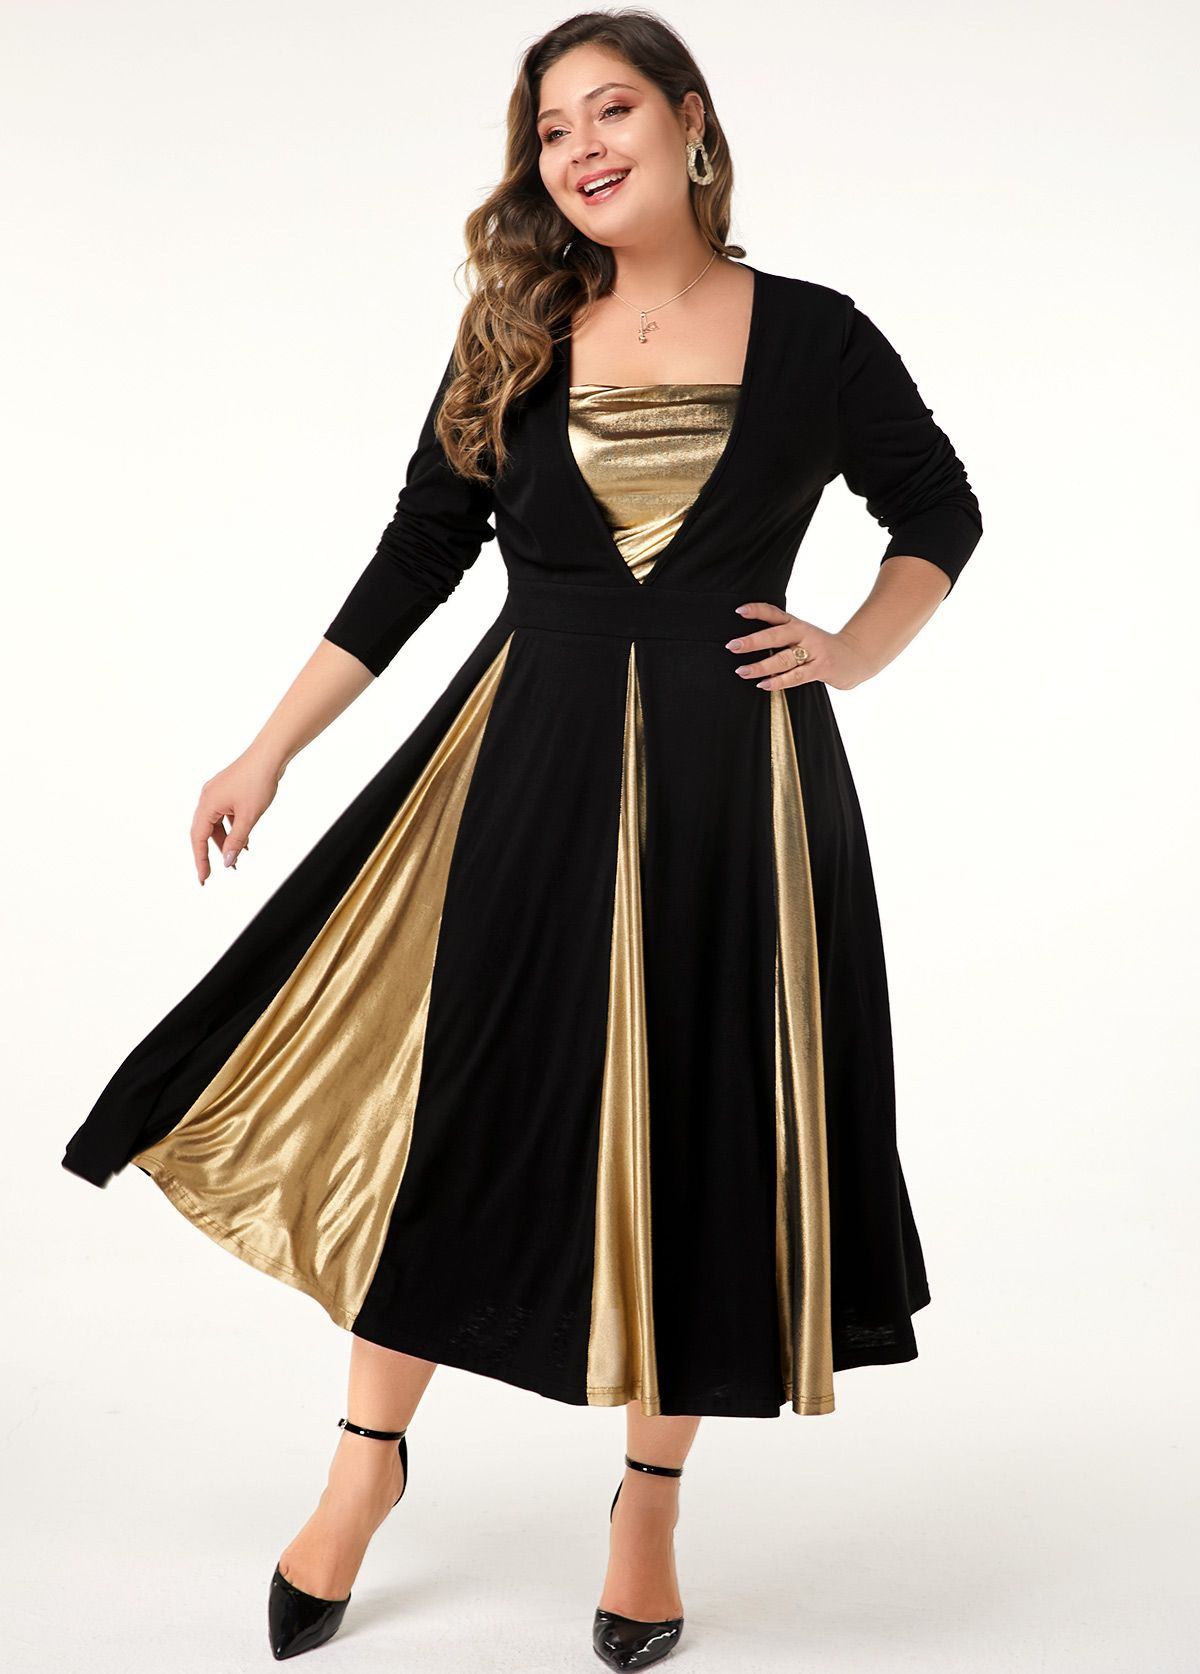 Plus Size Long Sleeve Contrast Panel Dress | modlily.com - USD $35.19 3